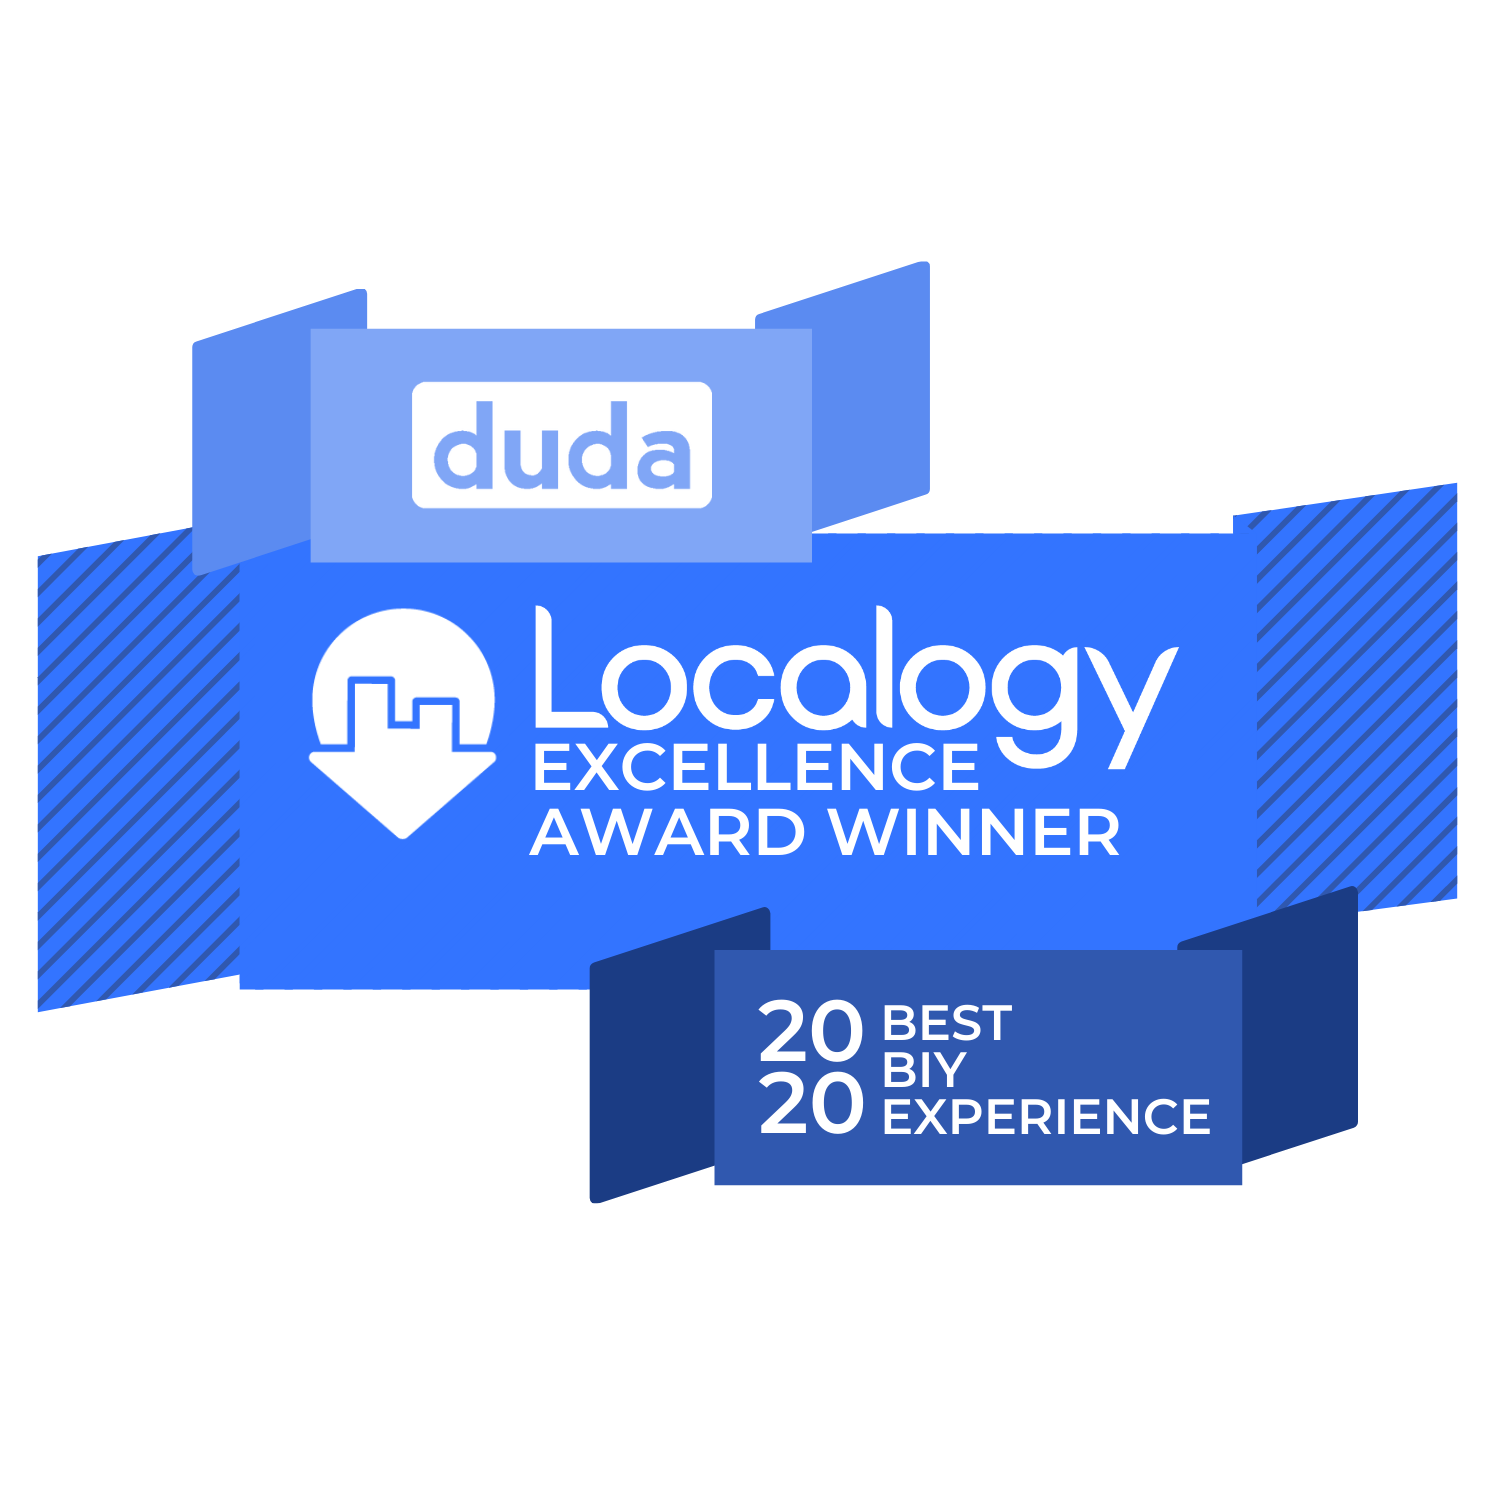 Localogy Excellence Awards Duda Best BIY Experience